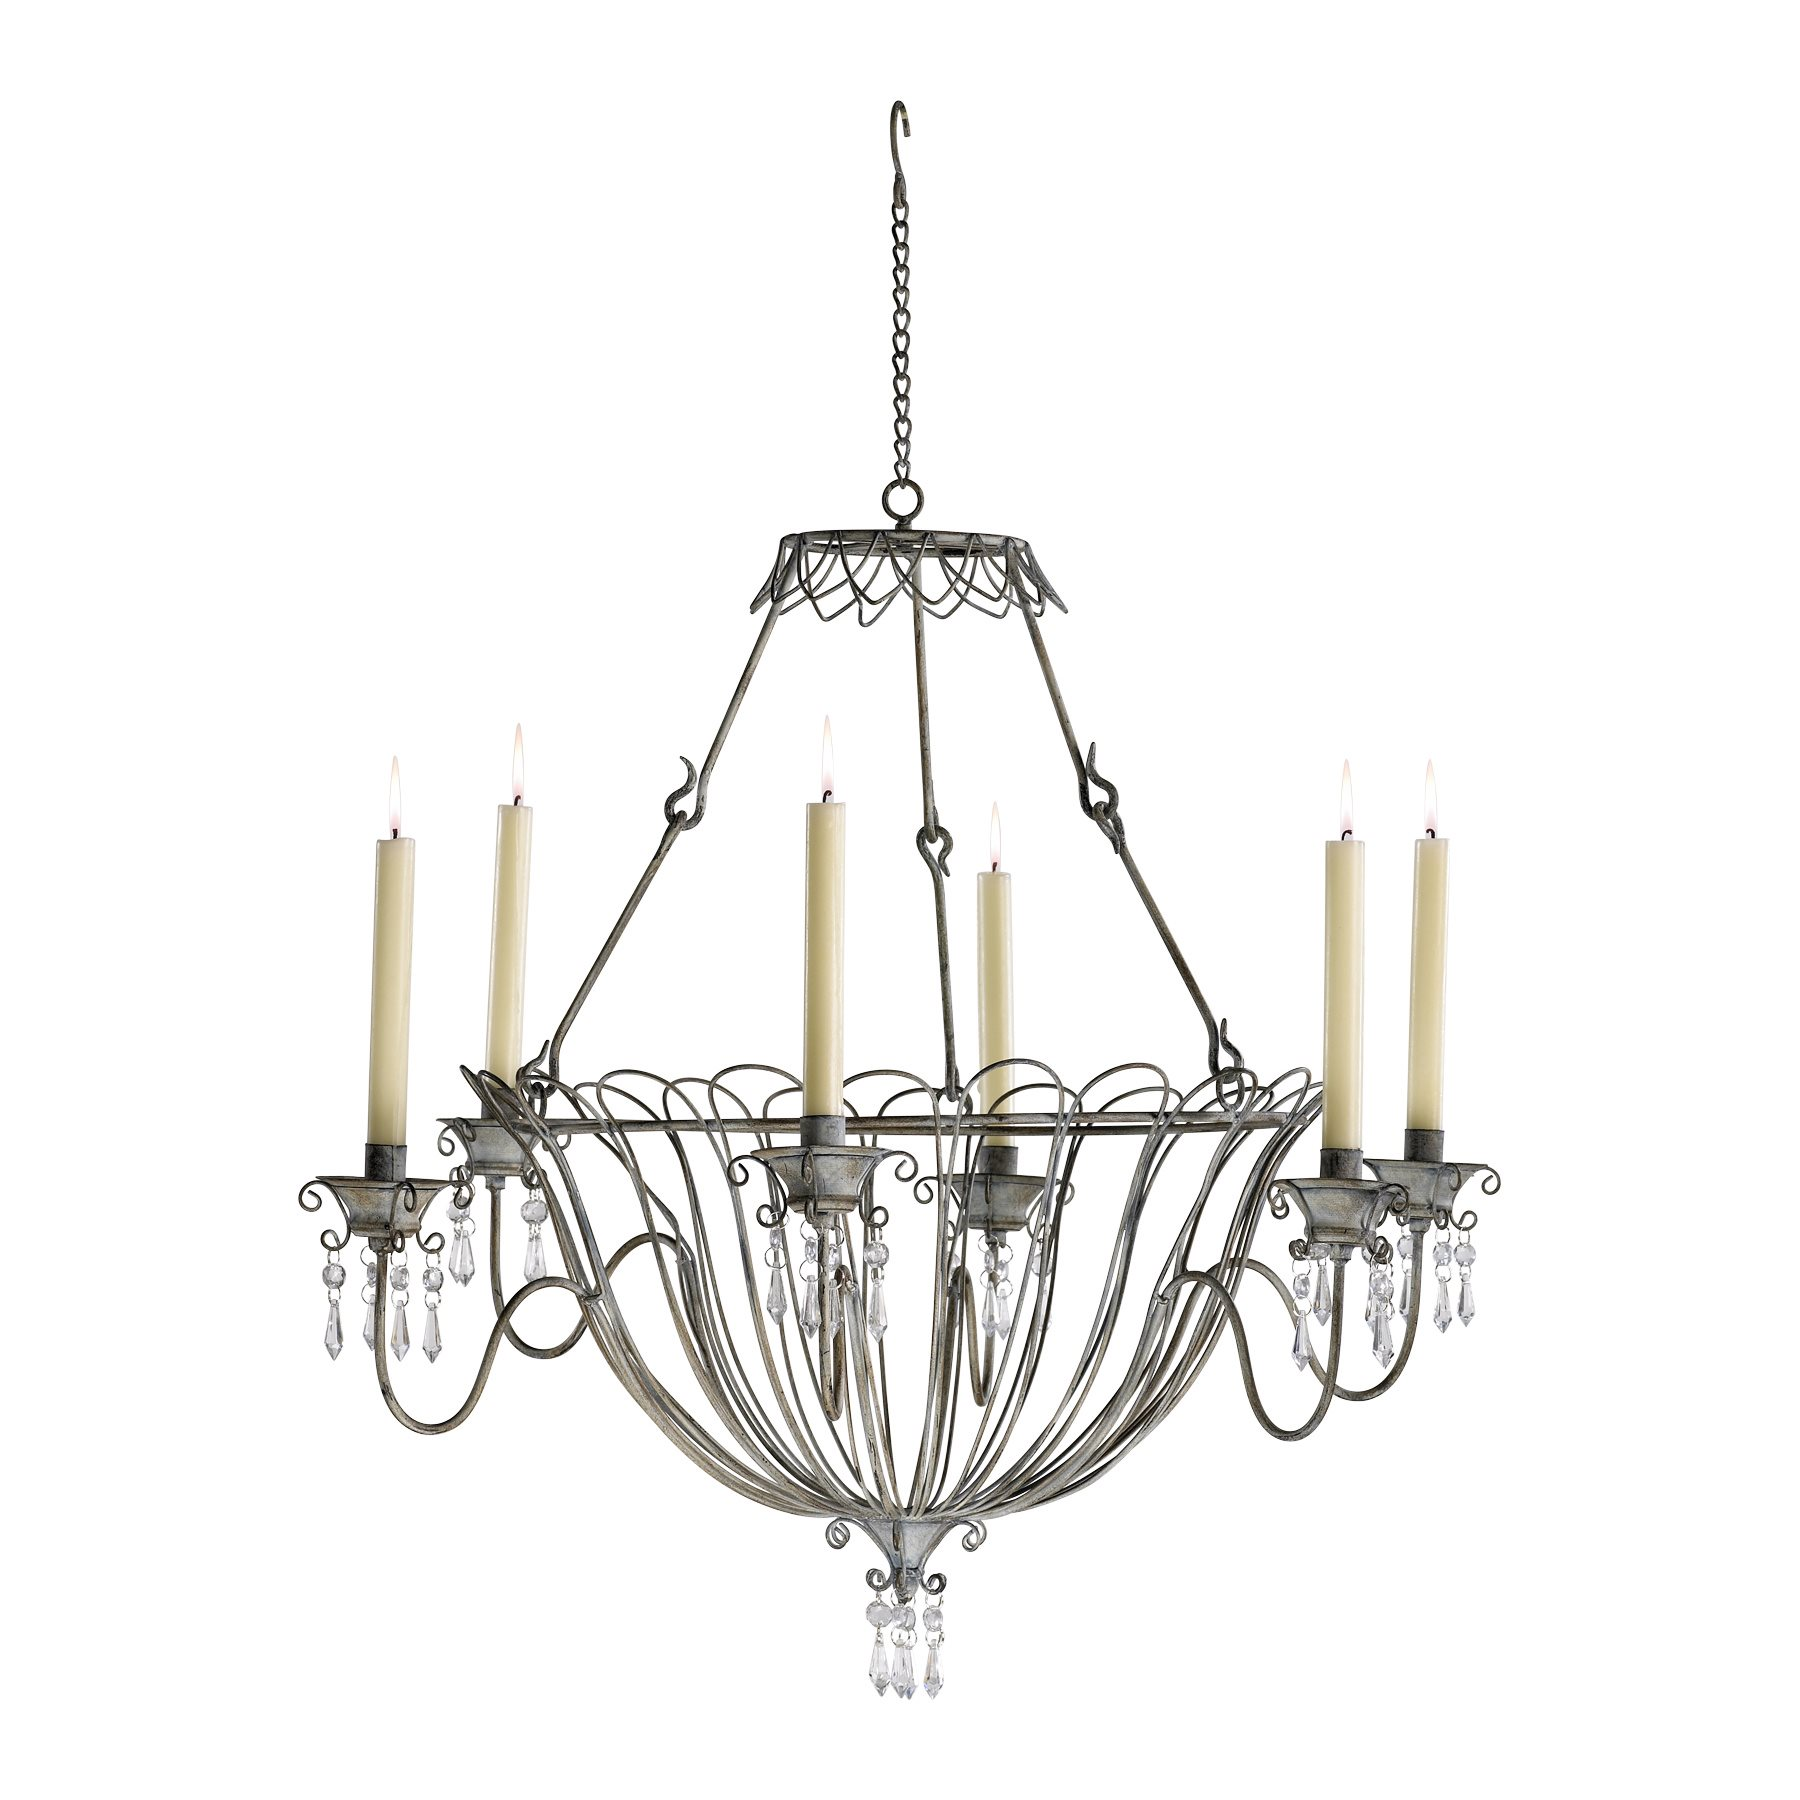 Cyan Design Somerset Transitional Crystal Chandelier